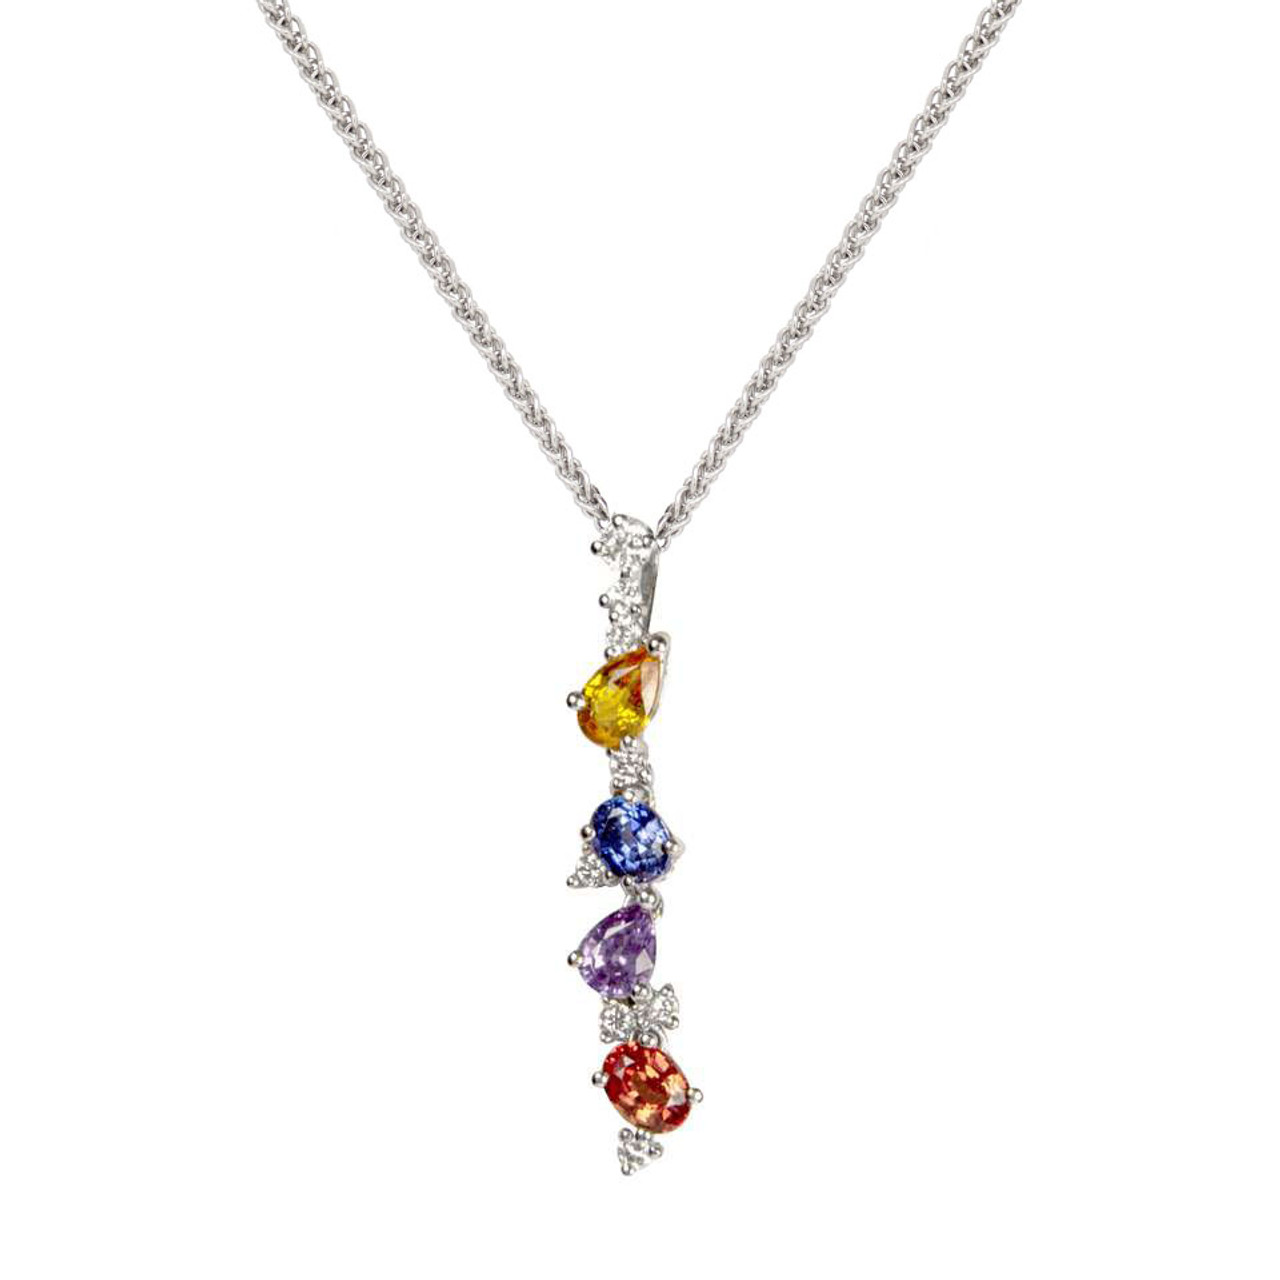 18ct White Gold multi-coloured Sapphire & Diamond Pendant on Chain